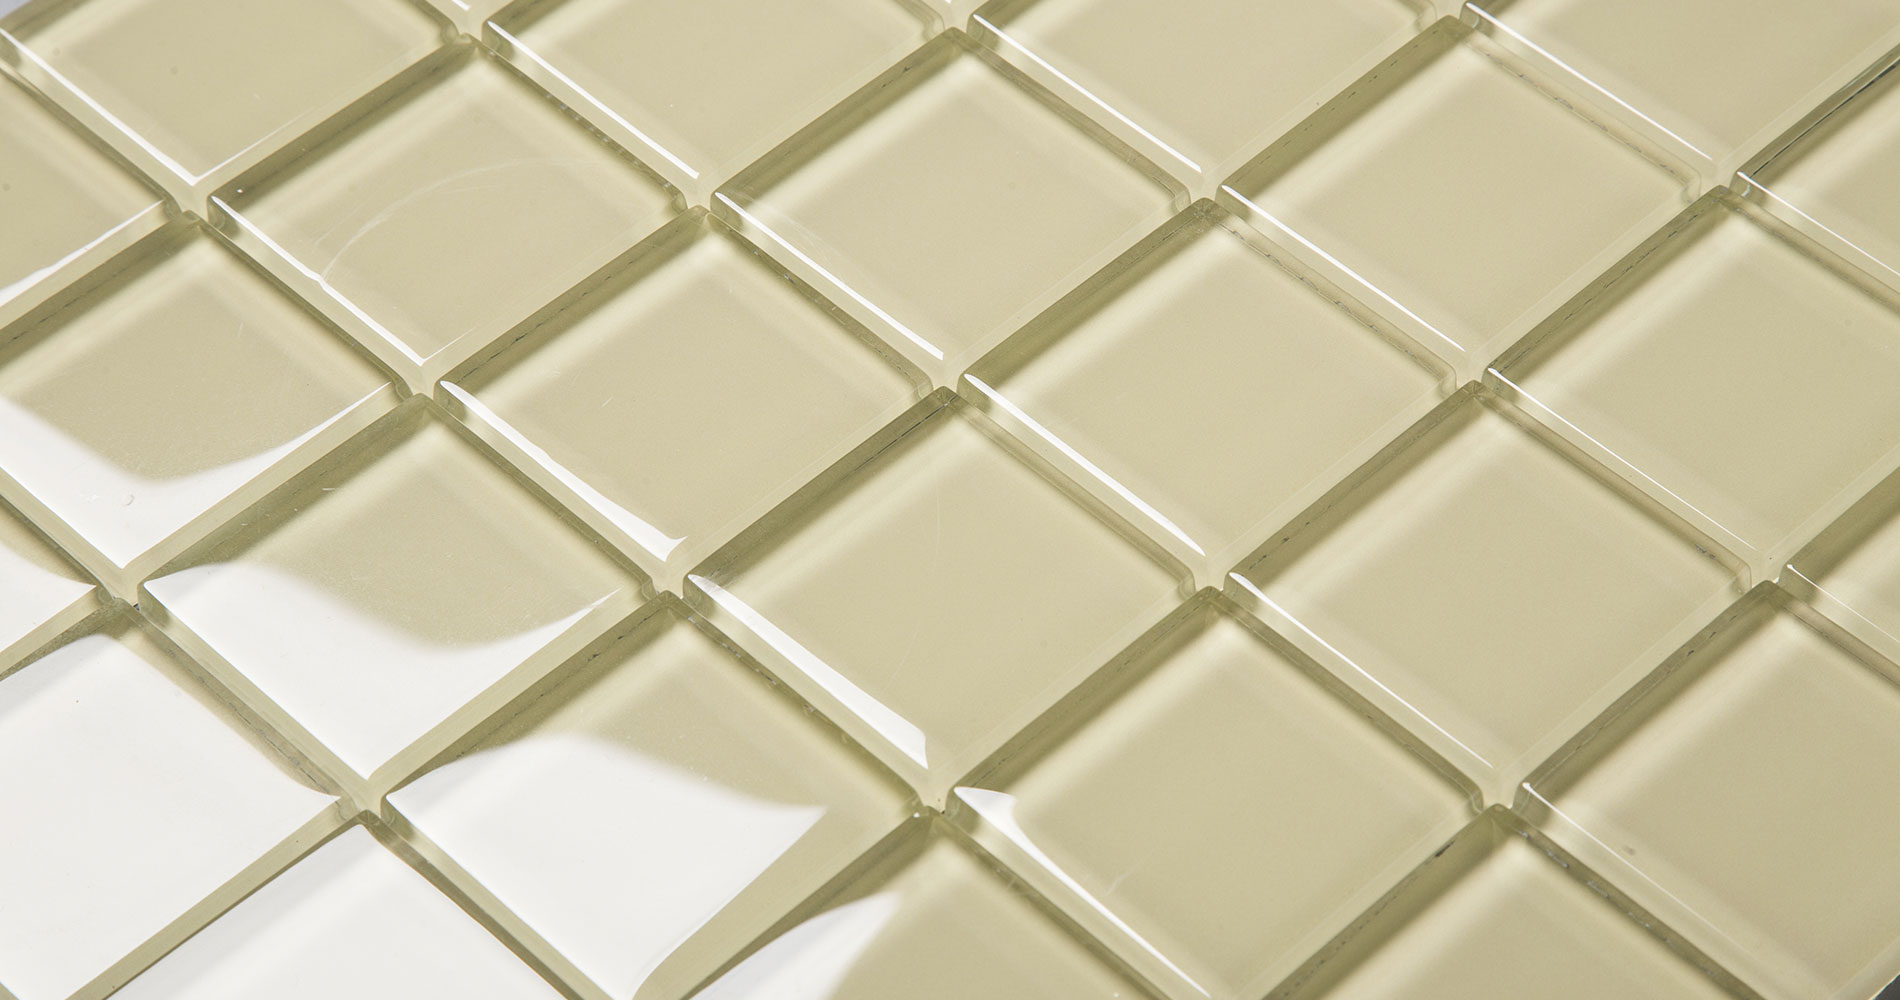 Century-mosaic-Crystal-Glass-48mm-Square-Mosaic-Tile-Collection-17